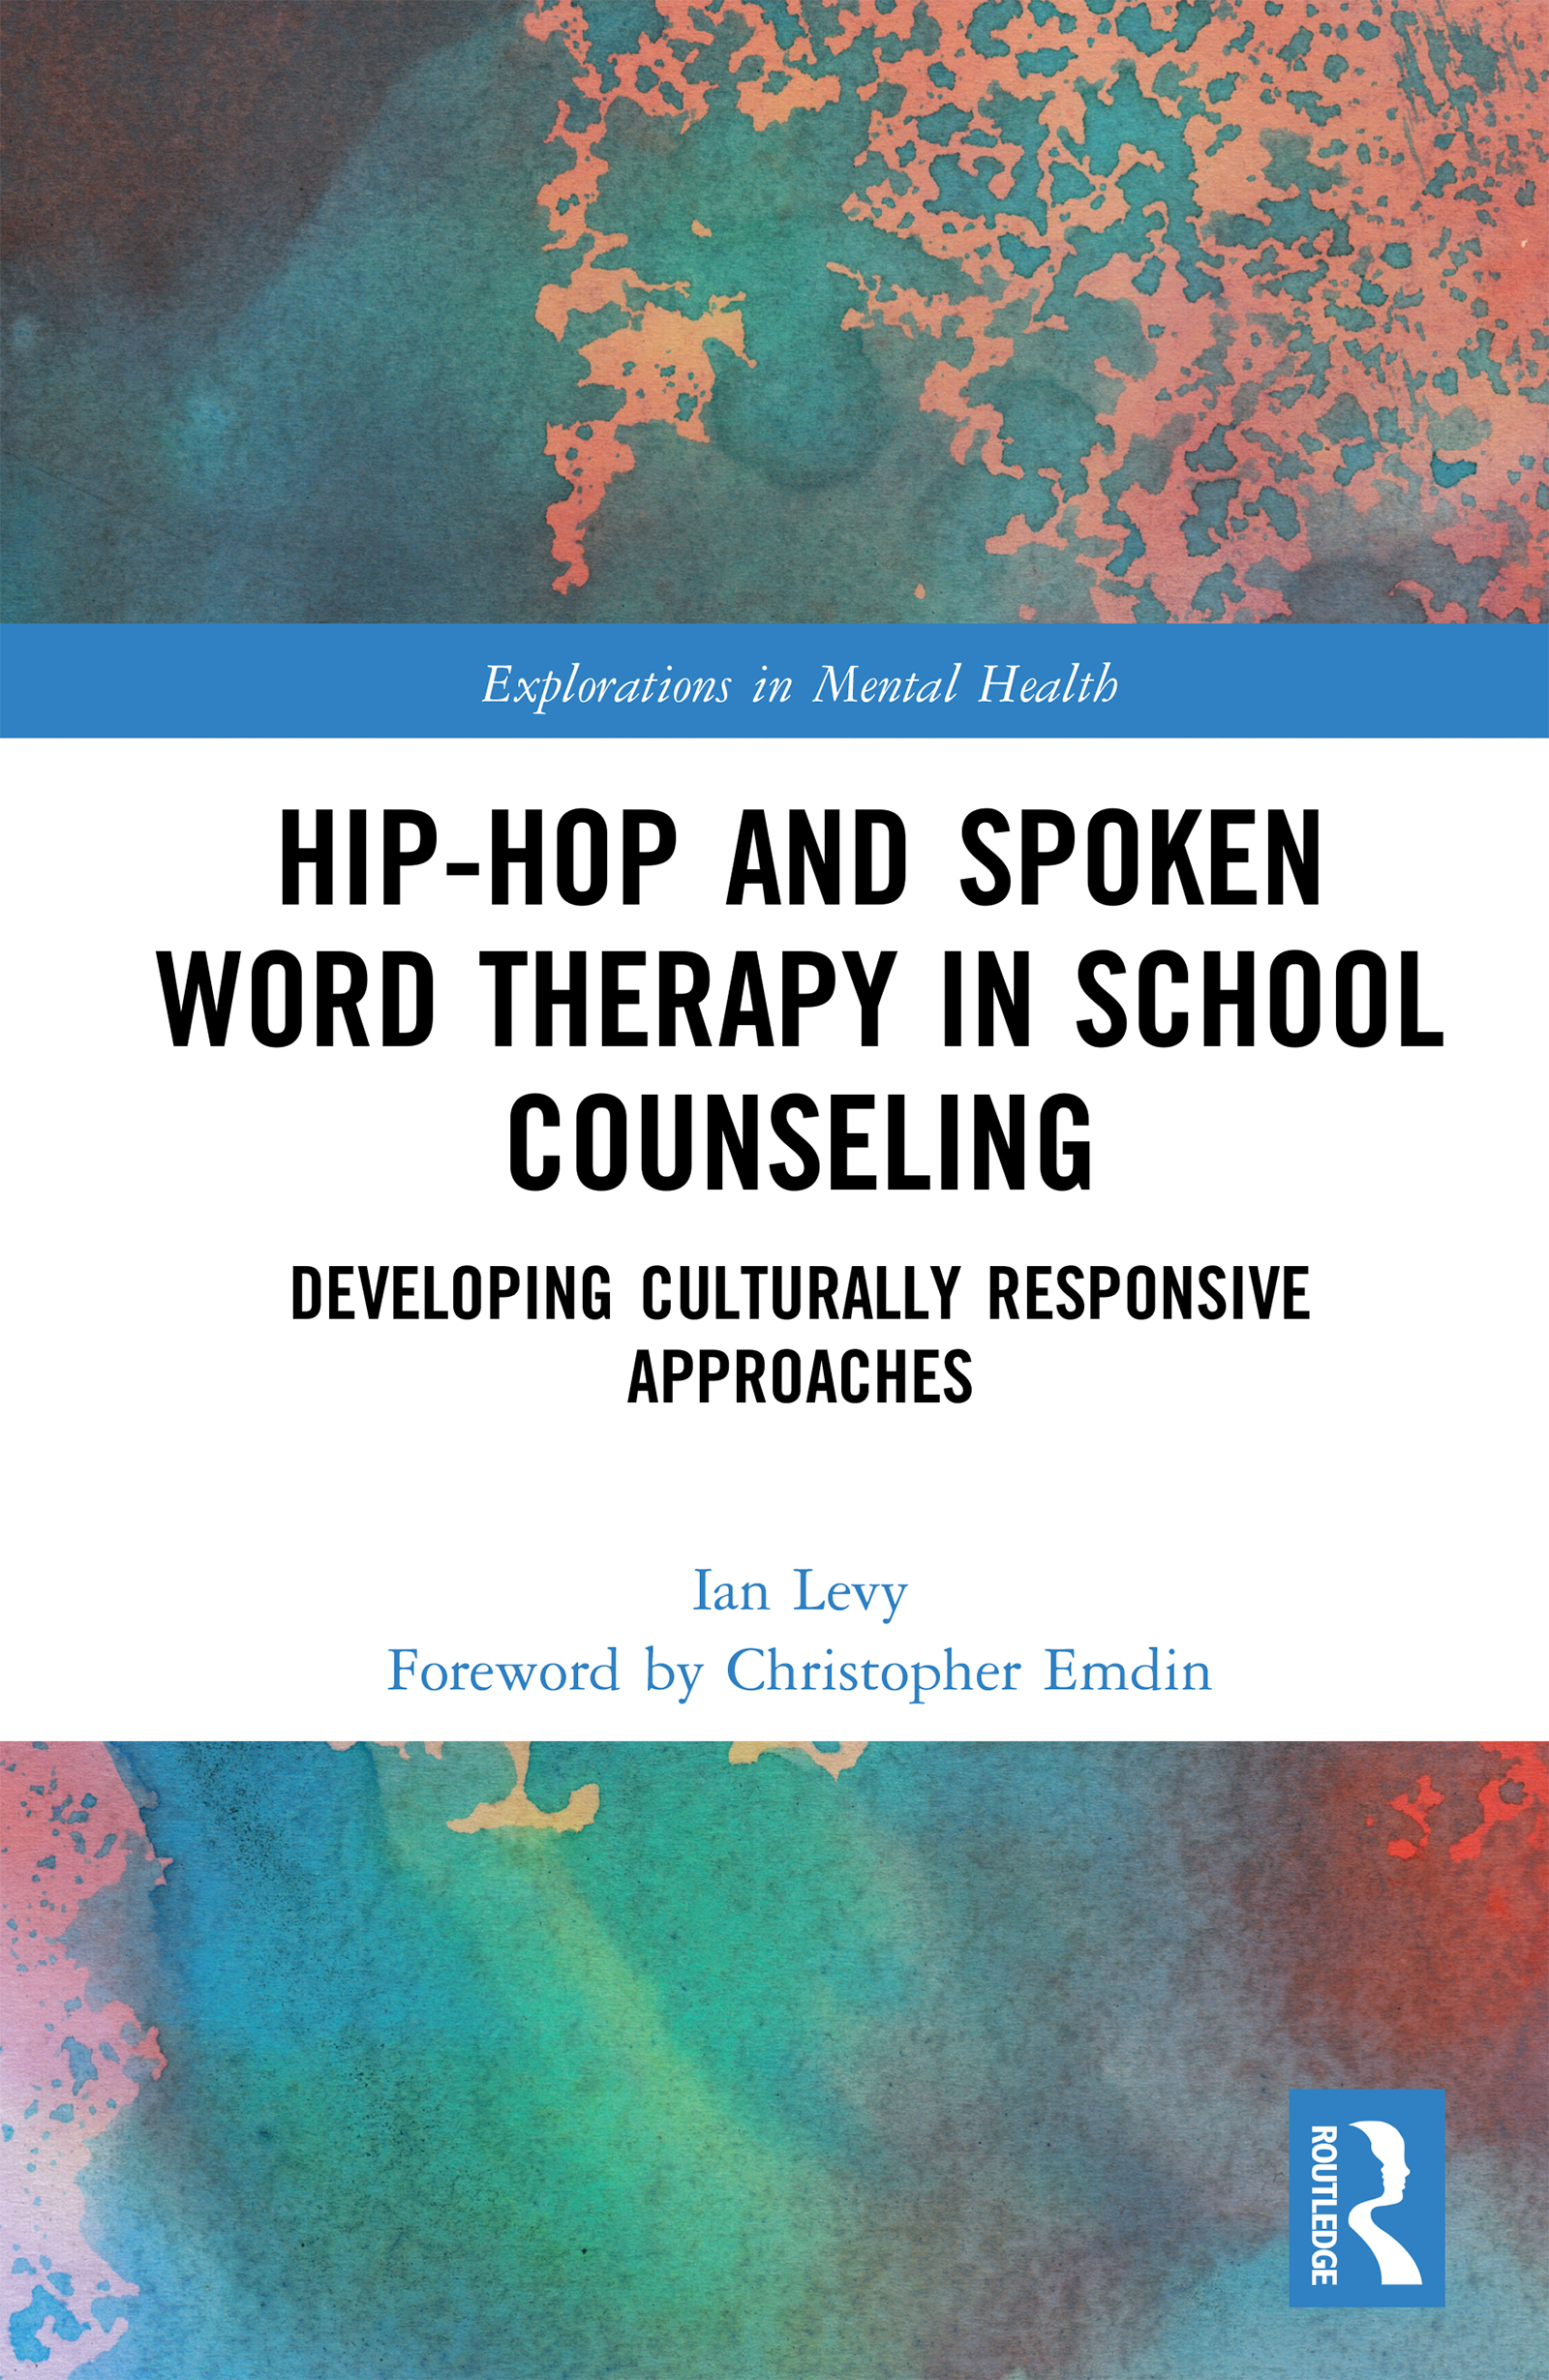 Hip-Hop and Spoken Word Therapy in School Counseling